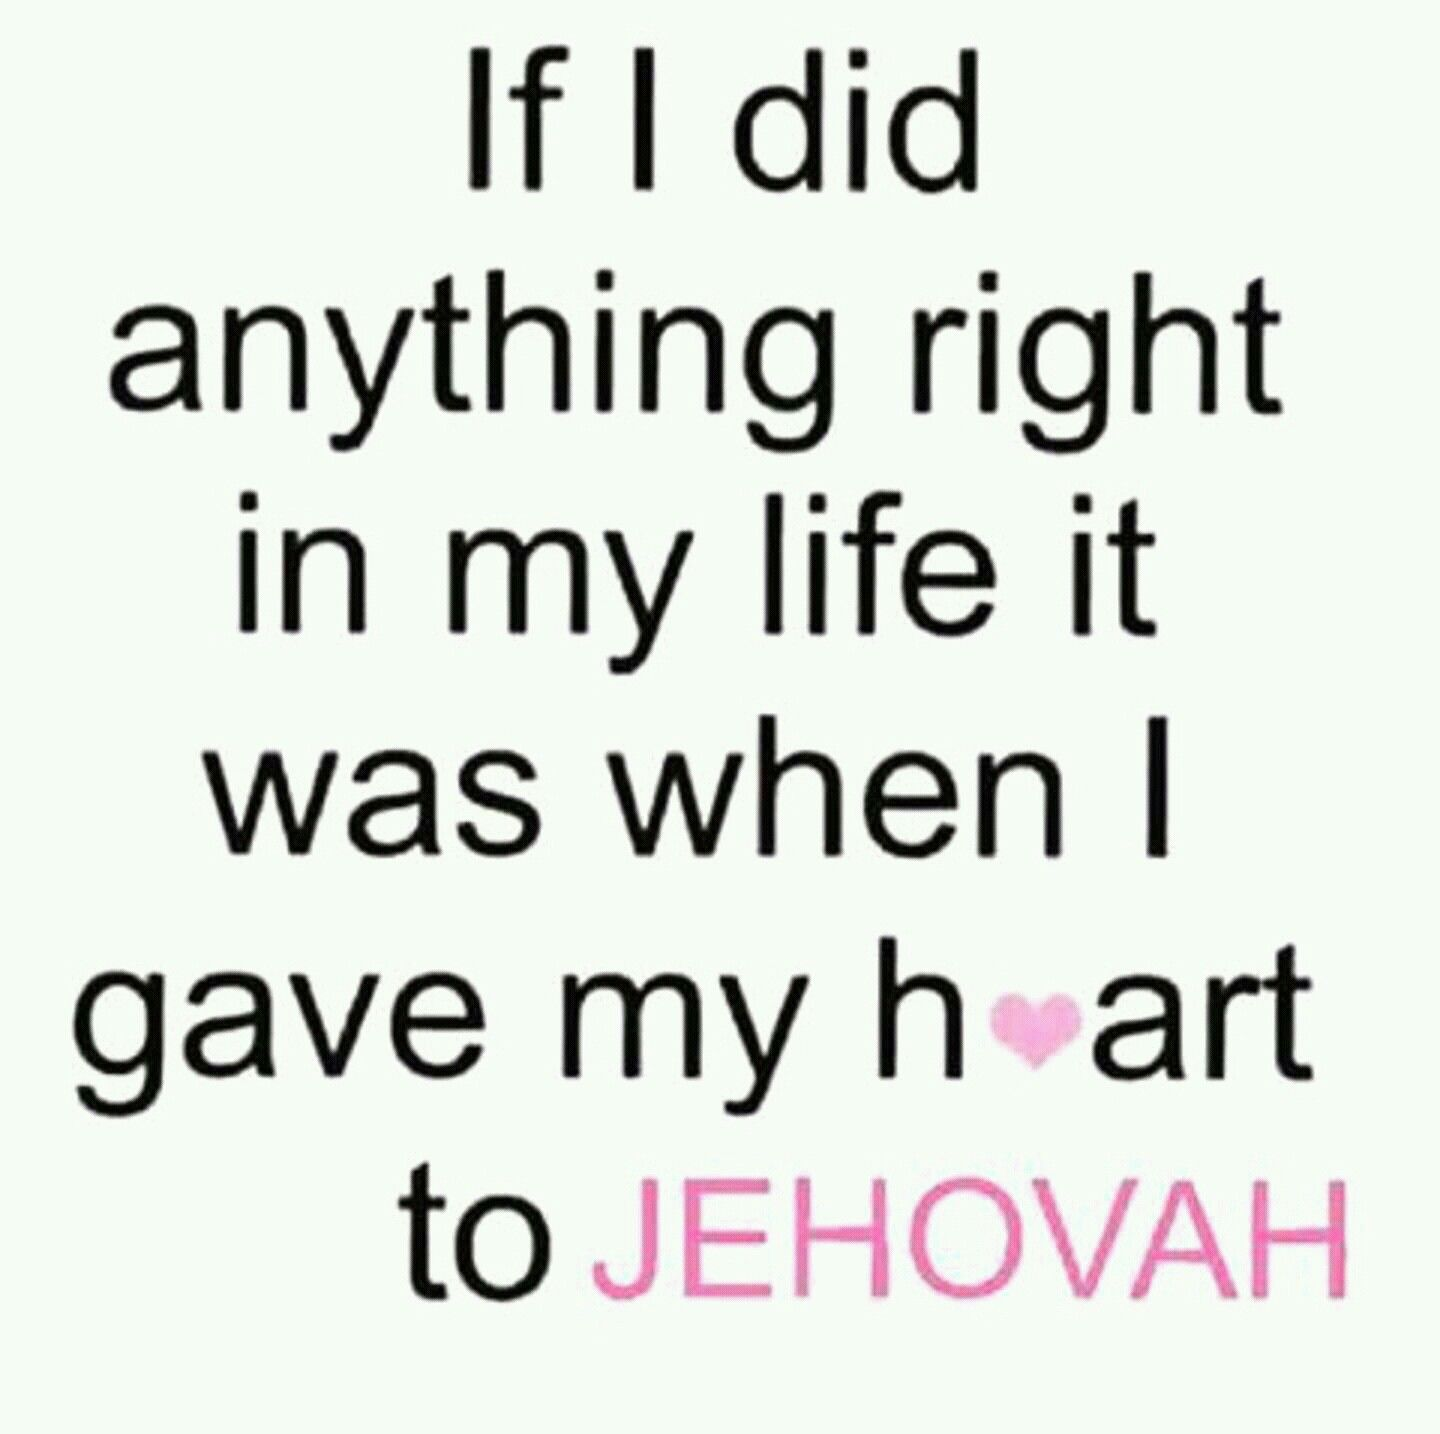 Perfect Love Quotes For Her So Very True.about The Only Right Decision This Far Jehovah's